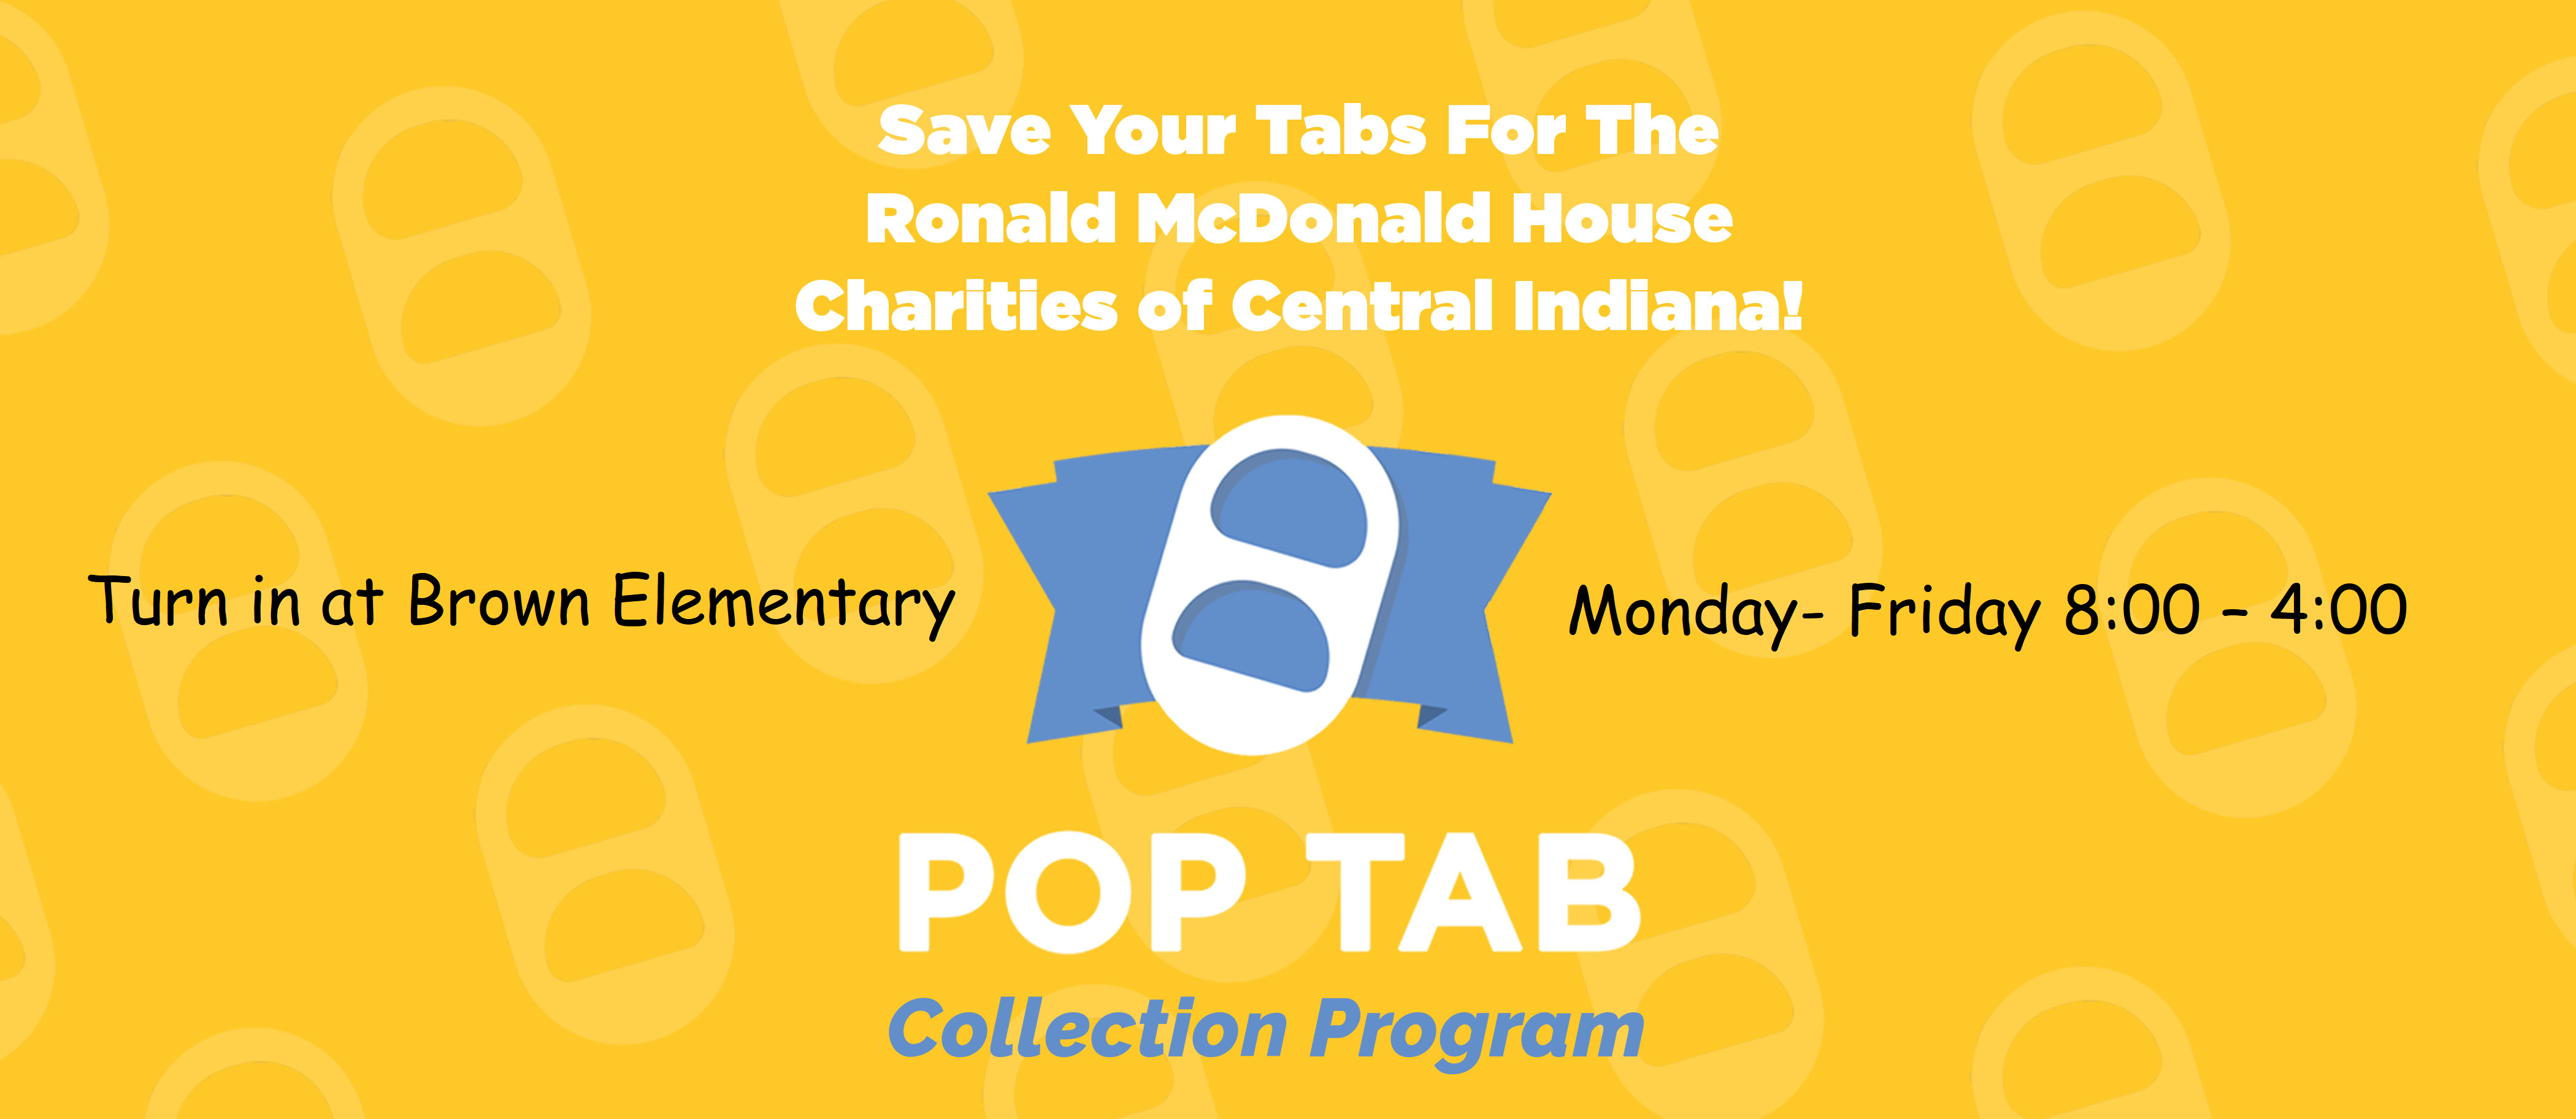 We collect Pop Tabs! Please drop them off Monday-Friday between 8:00-4:00 PM.